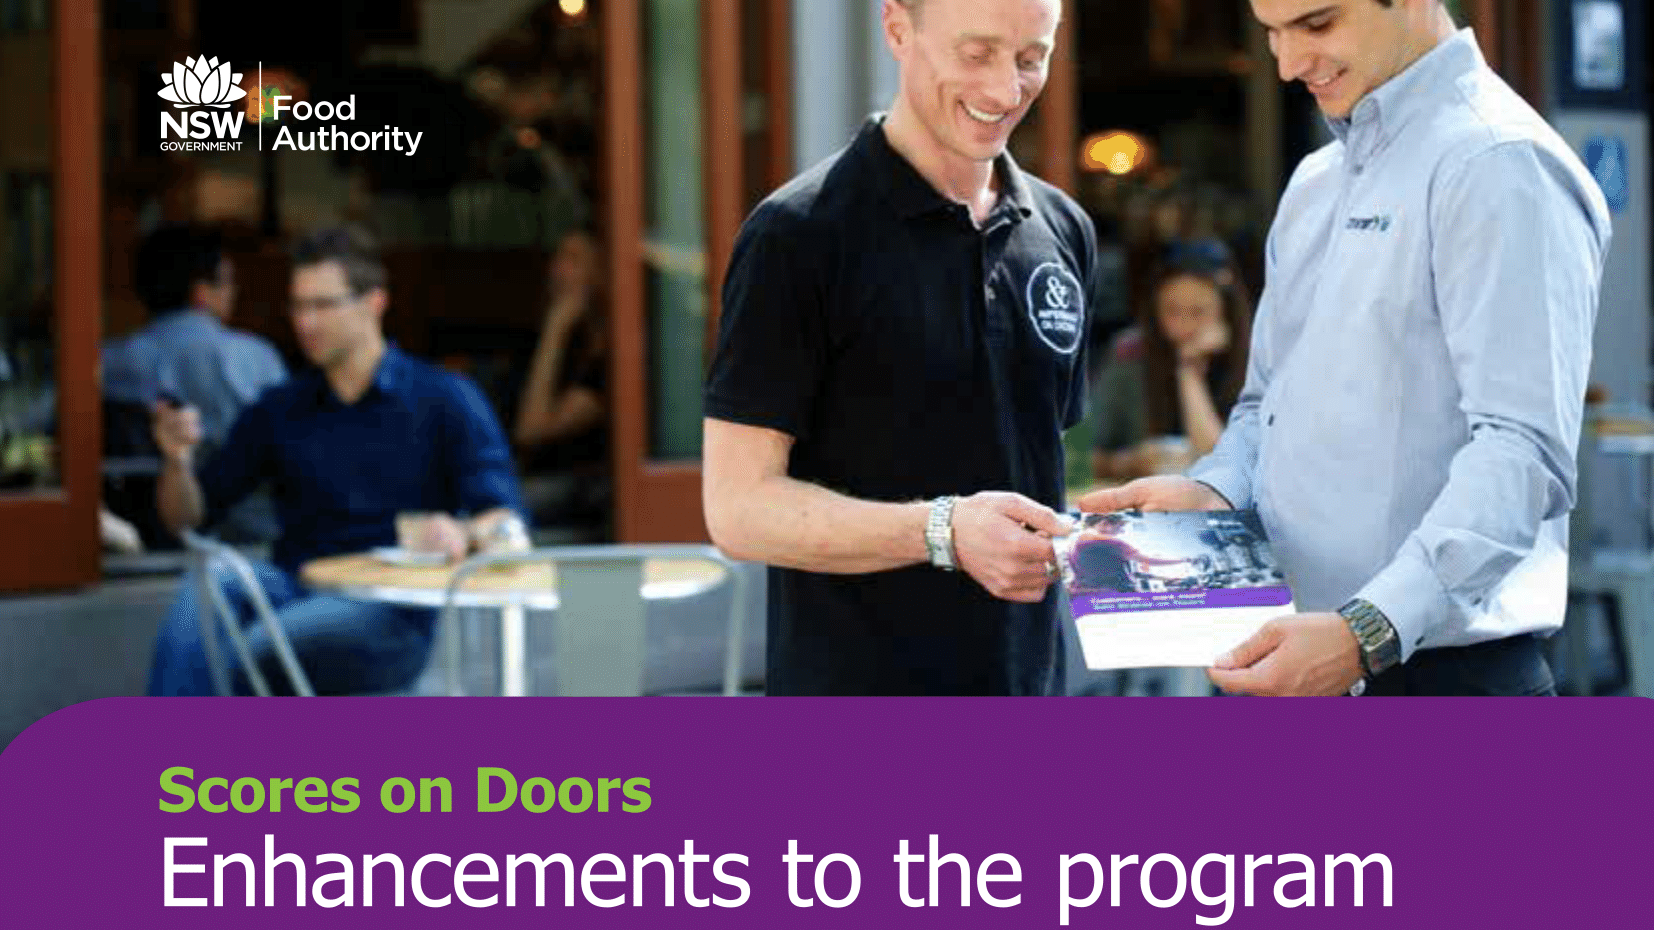 sc 1 st  Australian Institute of Food Safety & NSW Food Authority: The Scores on Doors Scheme